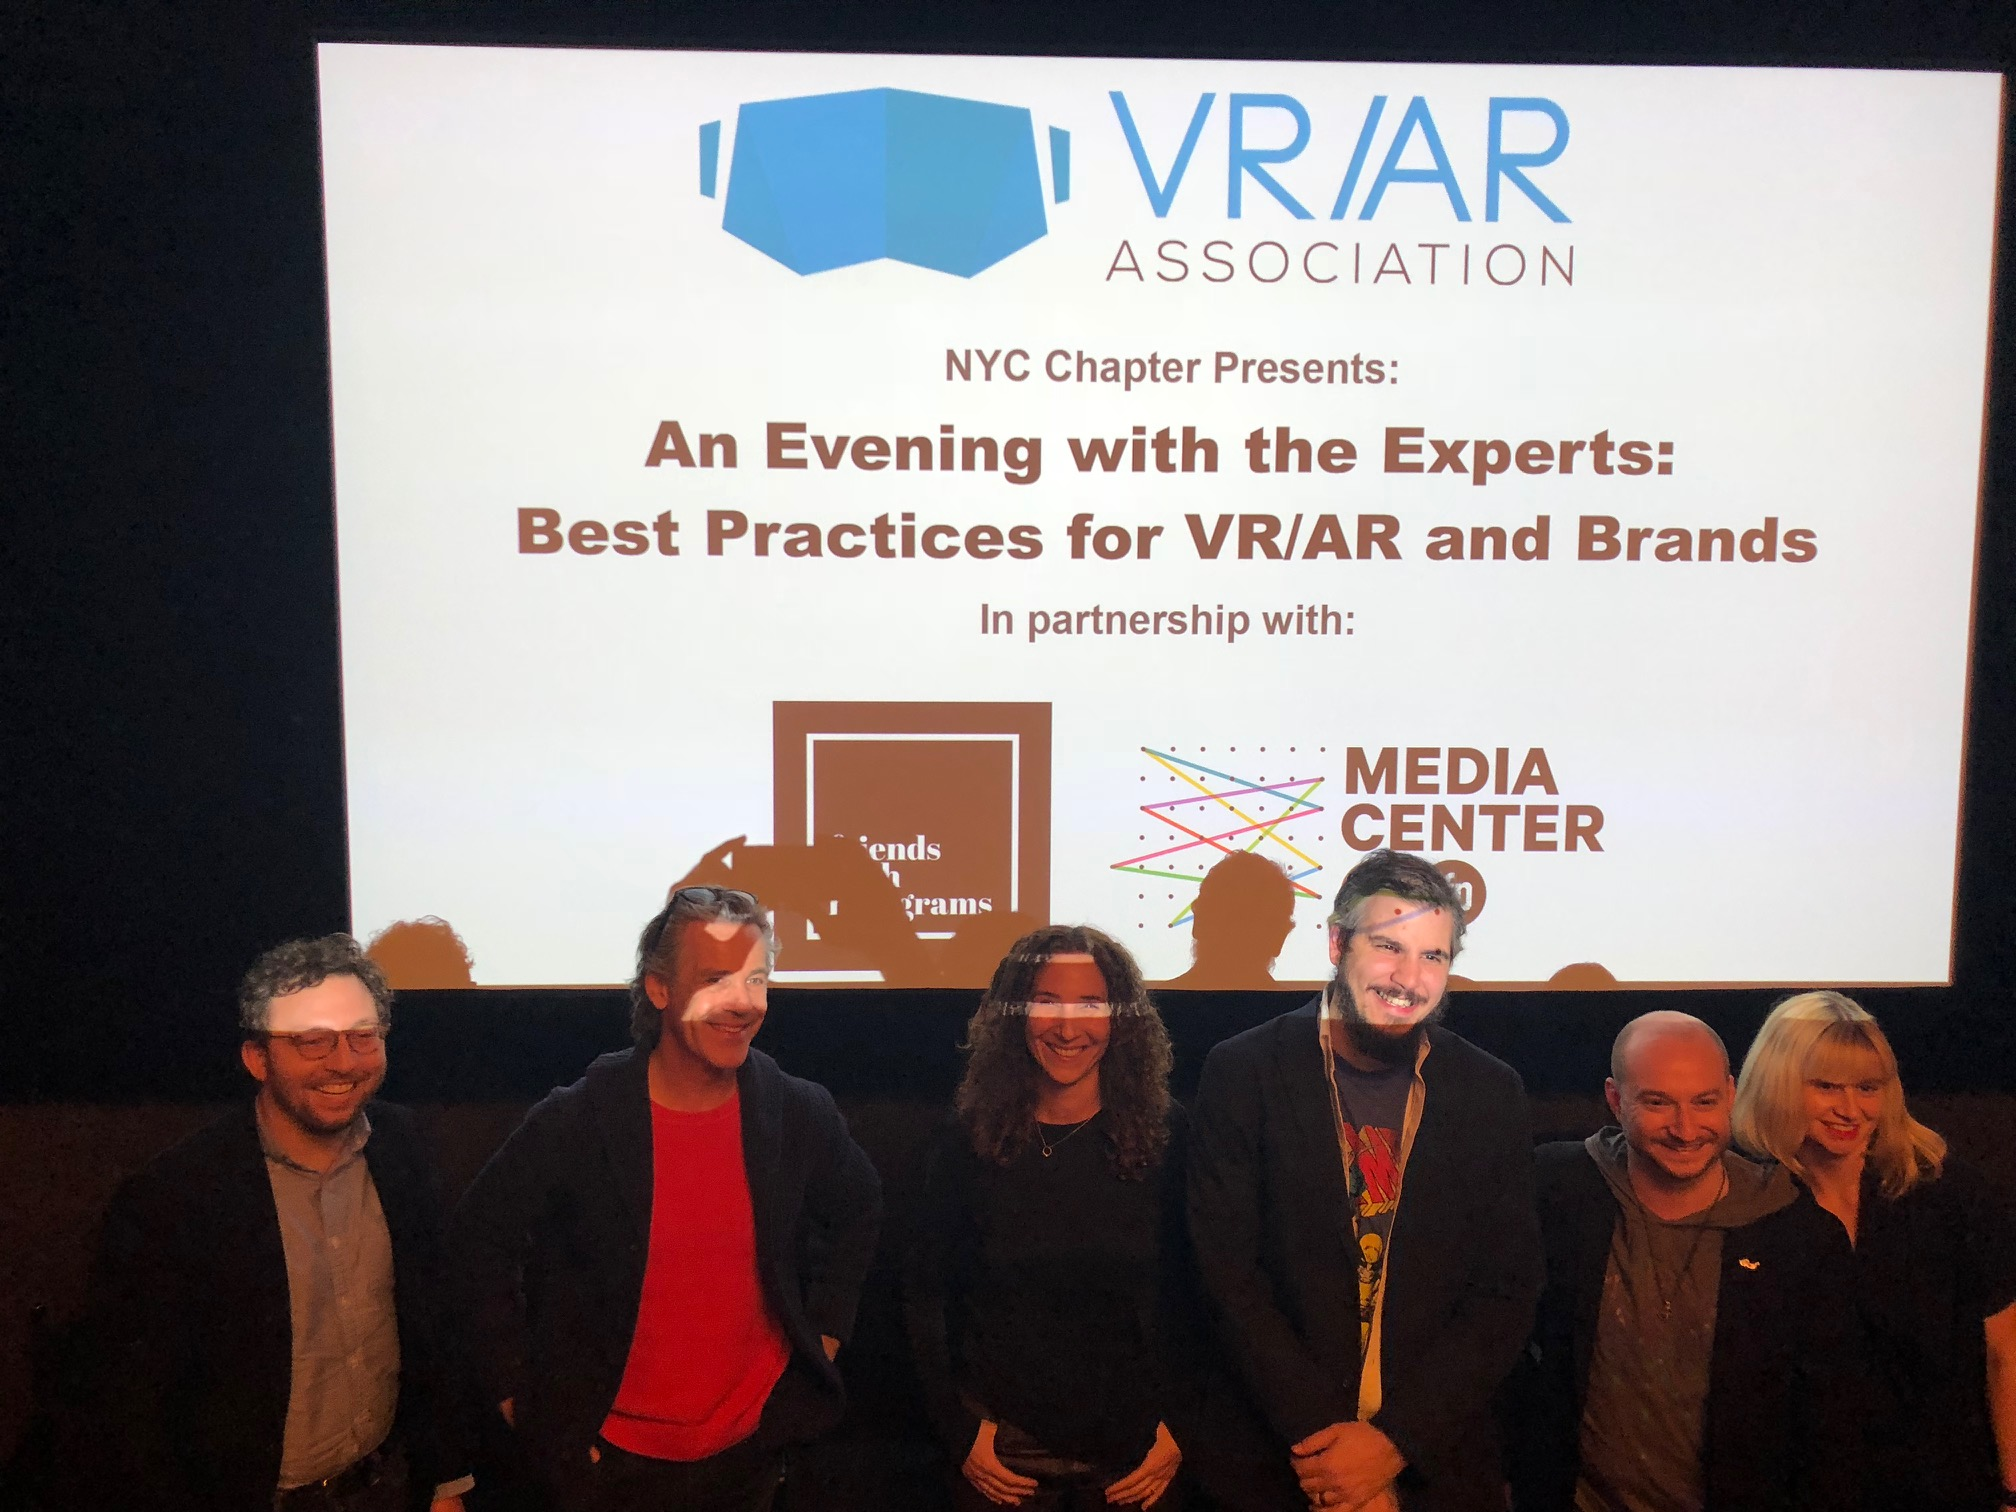 The VR/AR Association, the Future of Virtual Technology